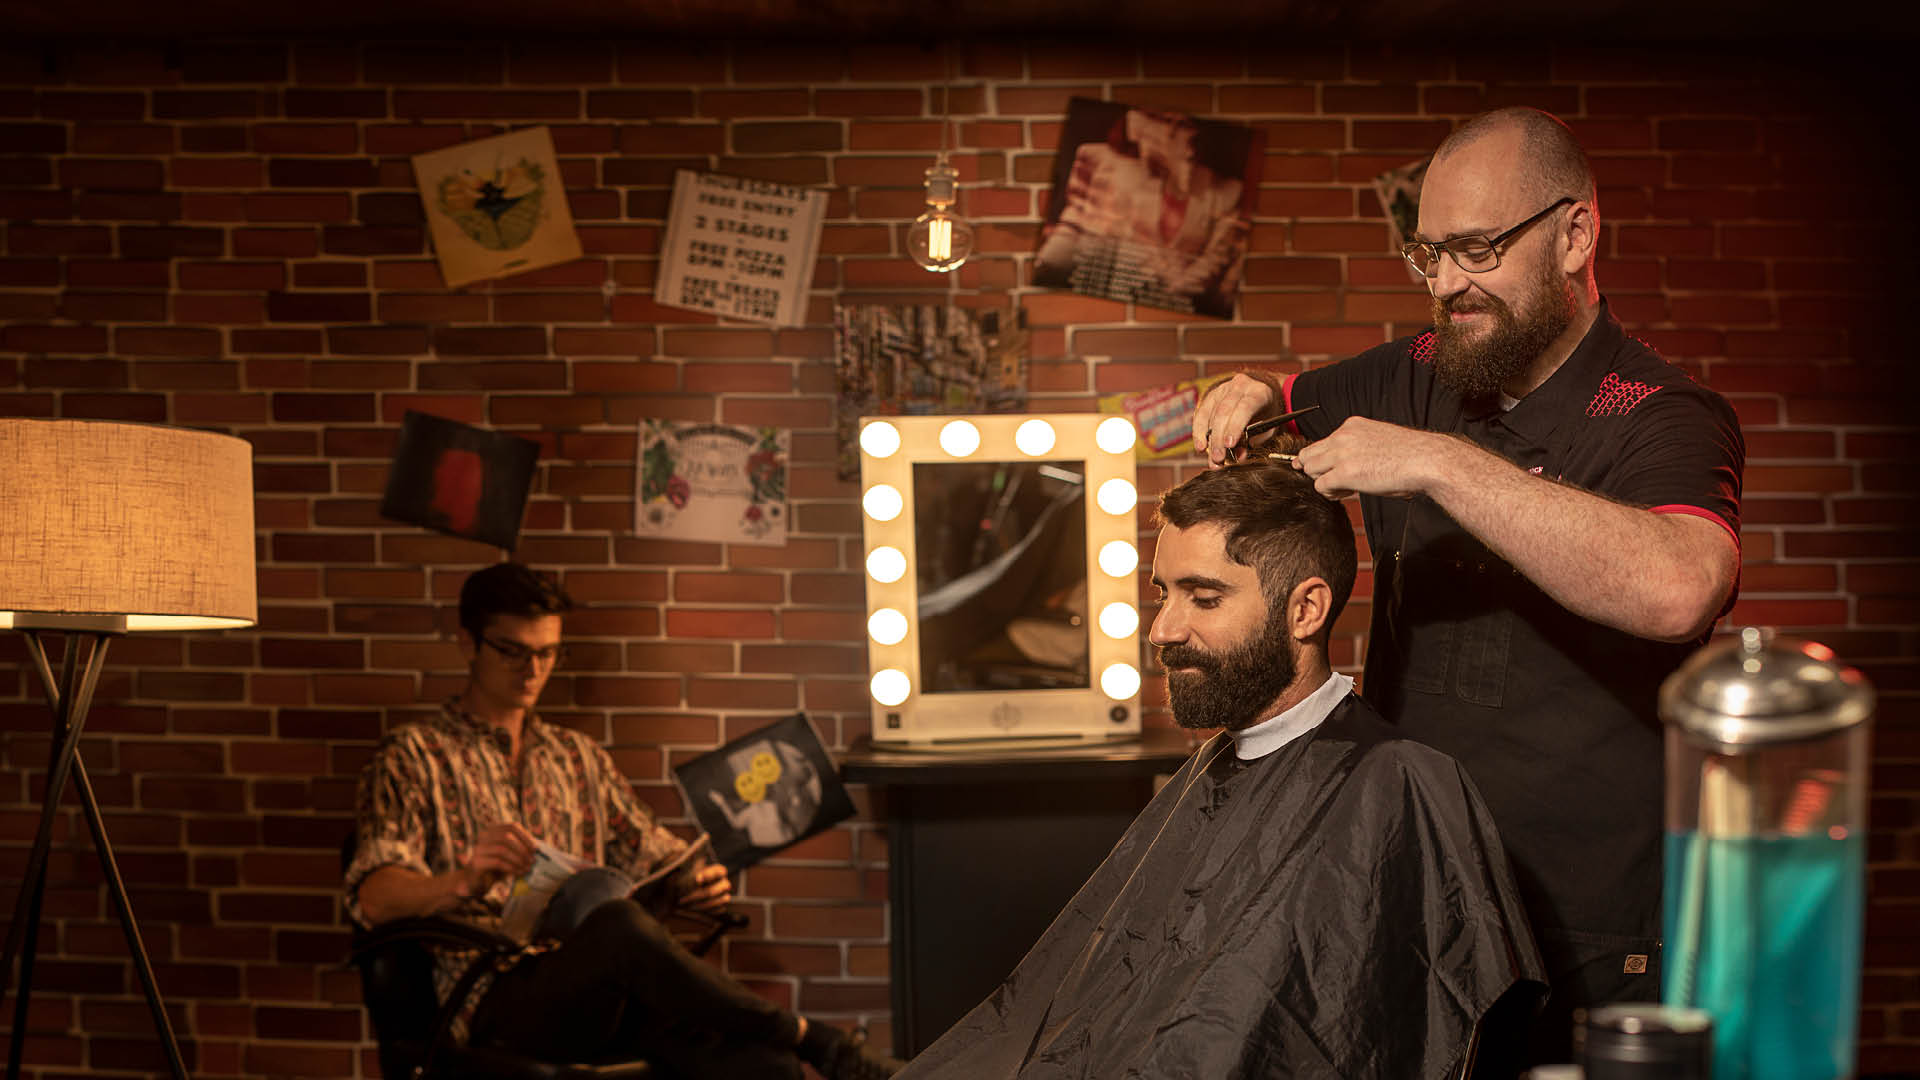 Barber Joel Dreier in action